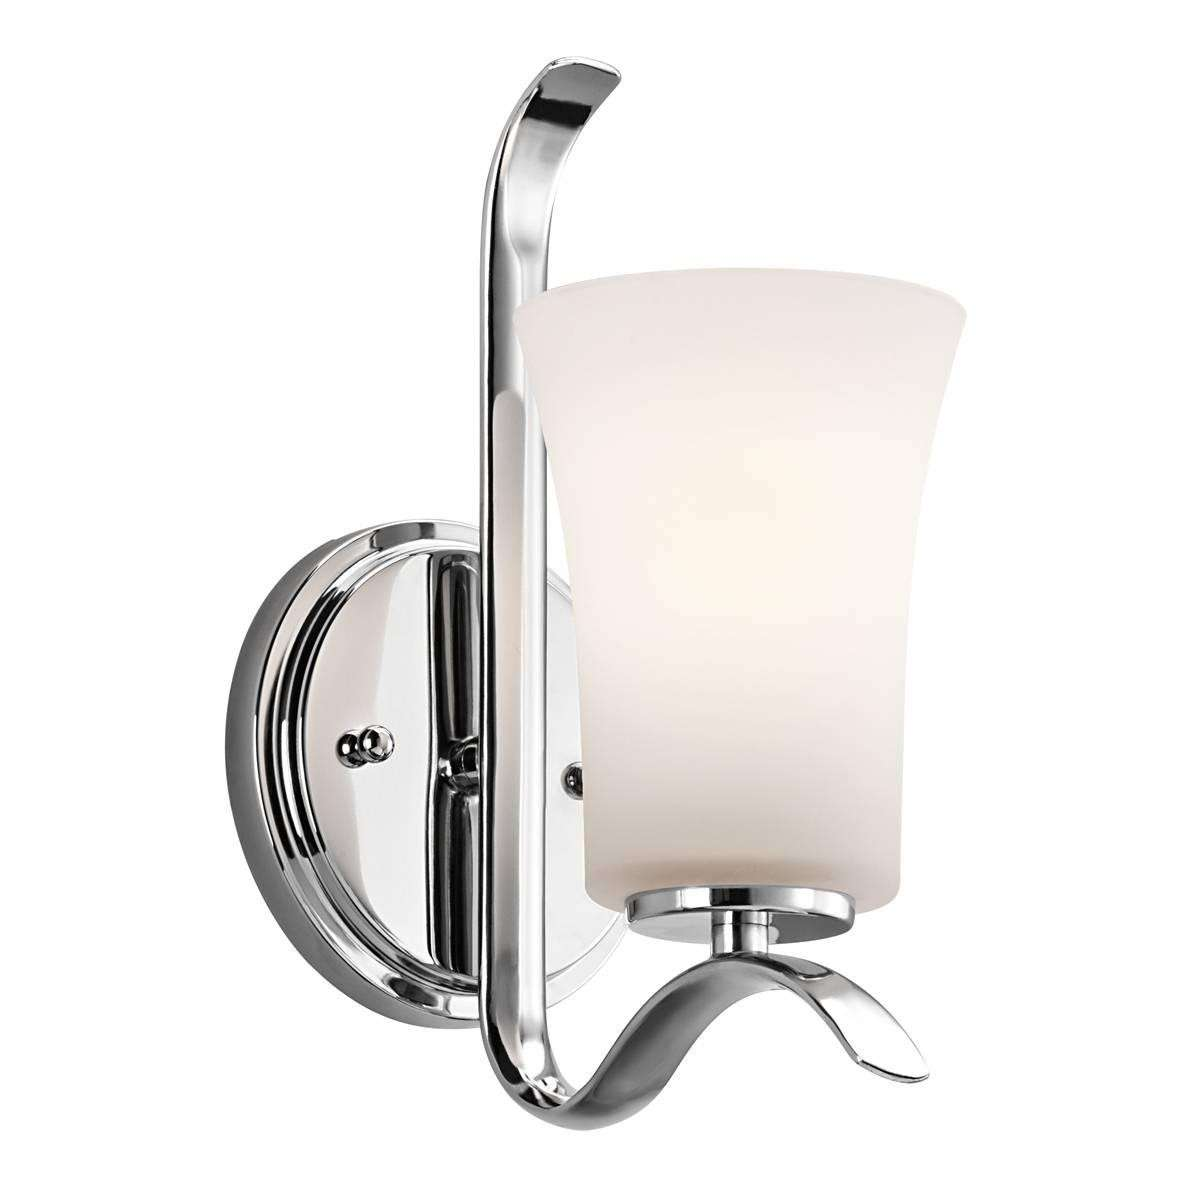 Kichler 45374CH Wall Sconce 1Lt in Chrome.